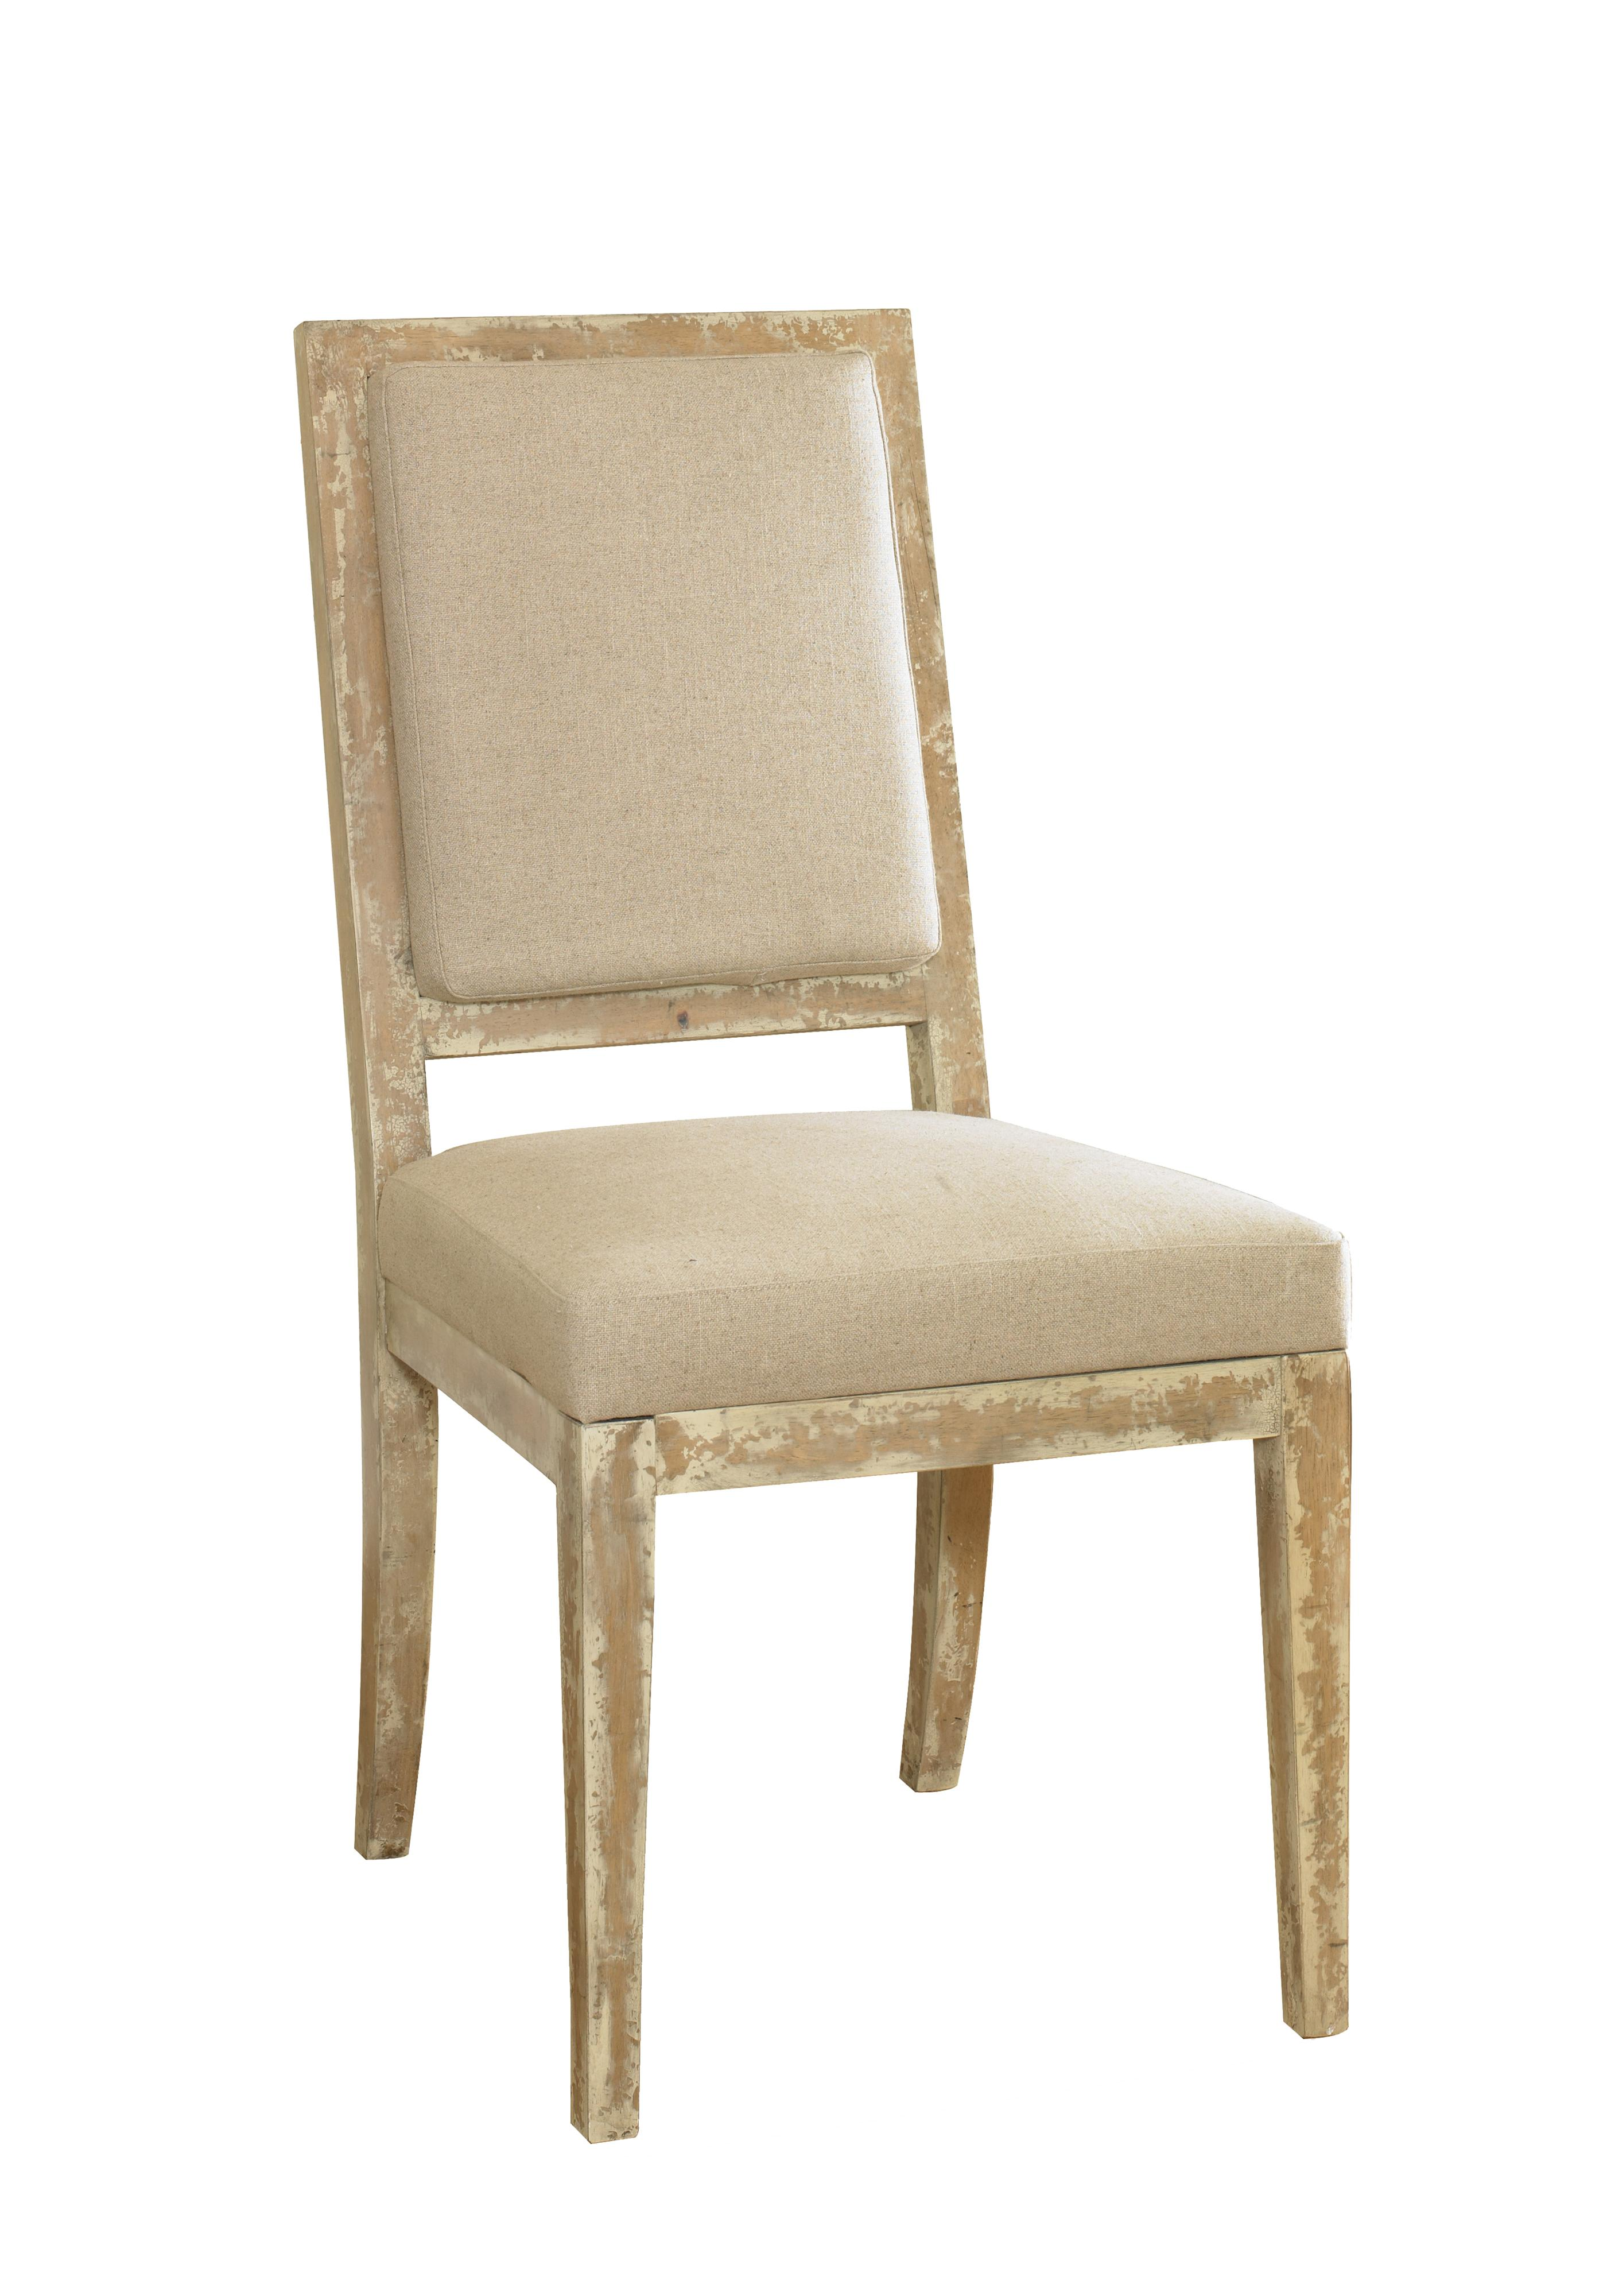 Hooker Furniture Sanctuary Addison Side Chair - Item Number: 200-36-064